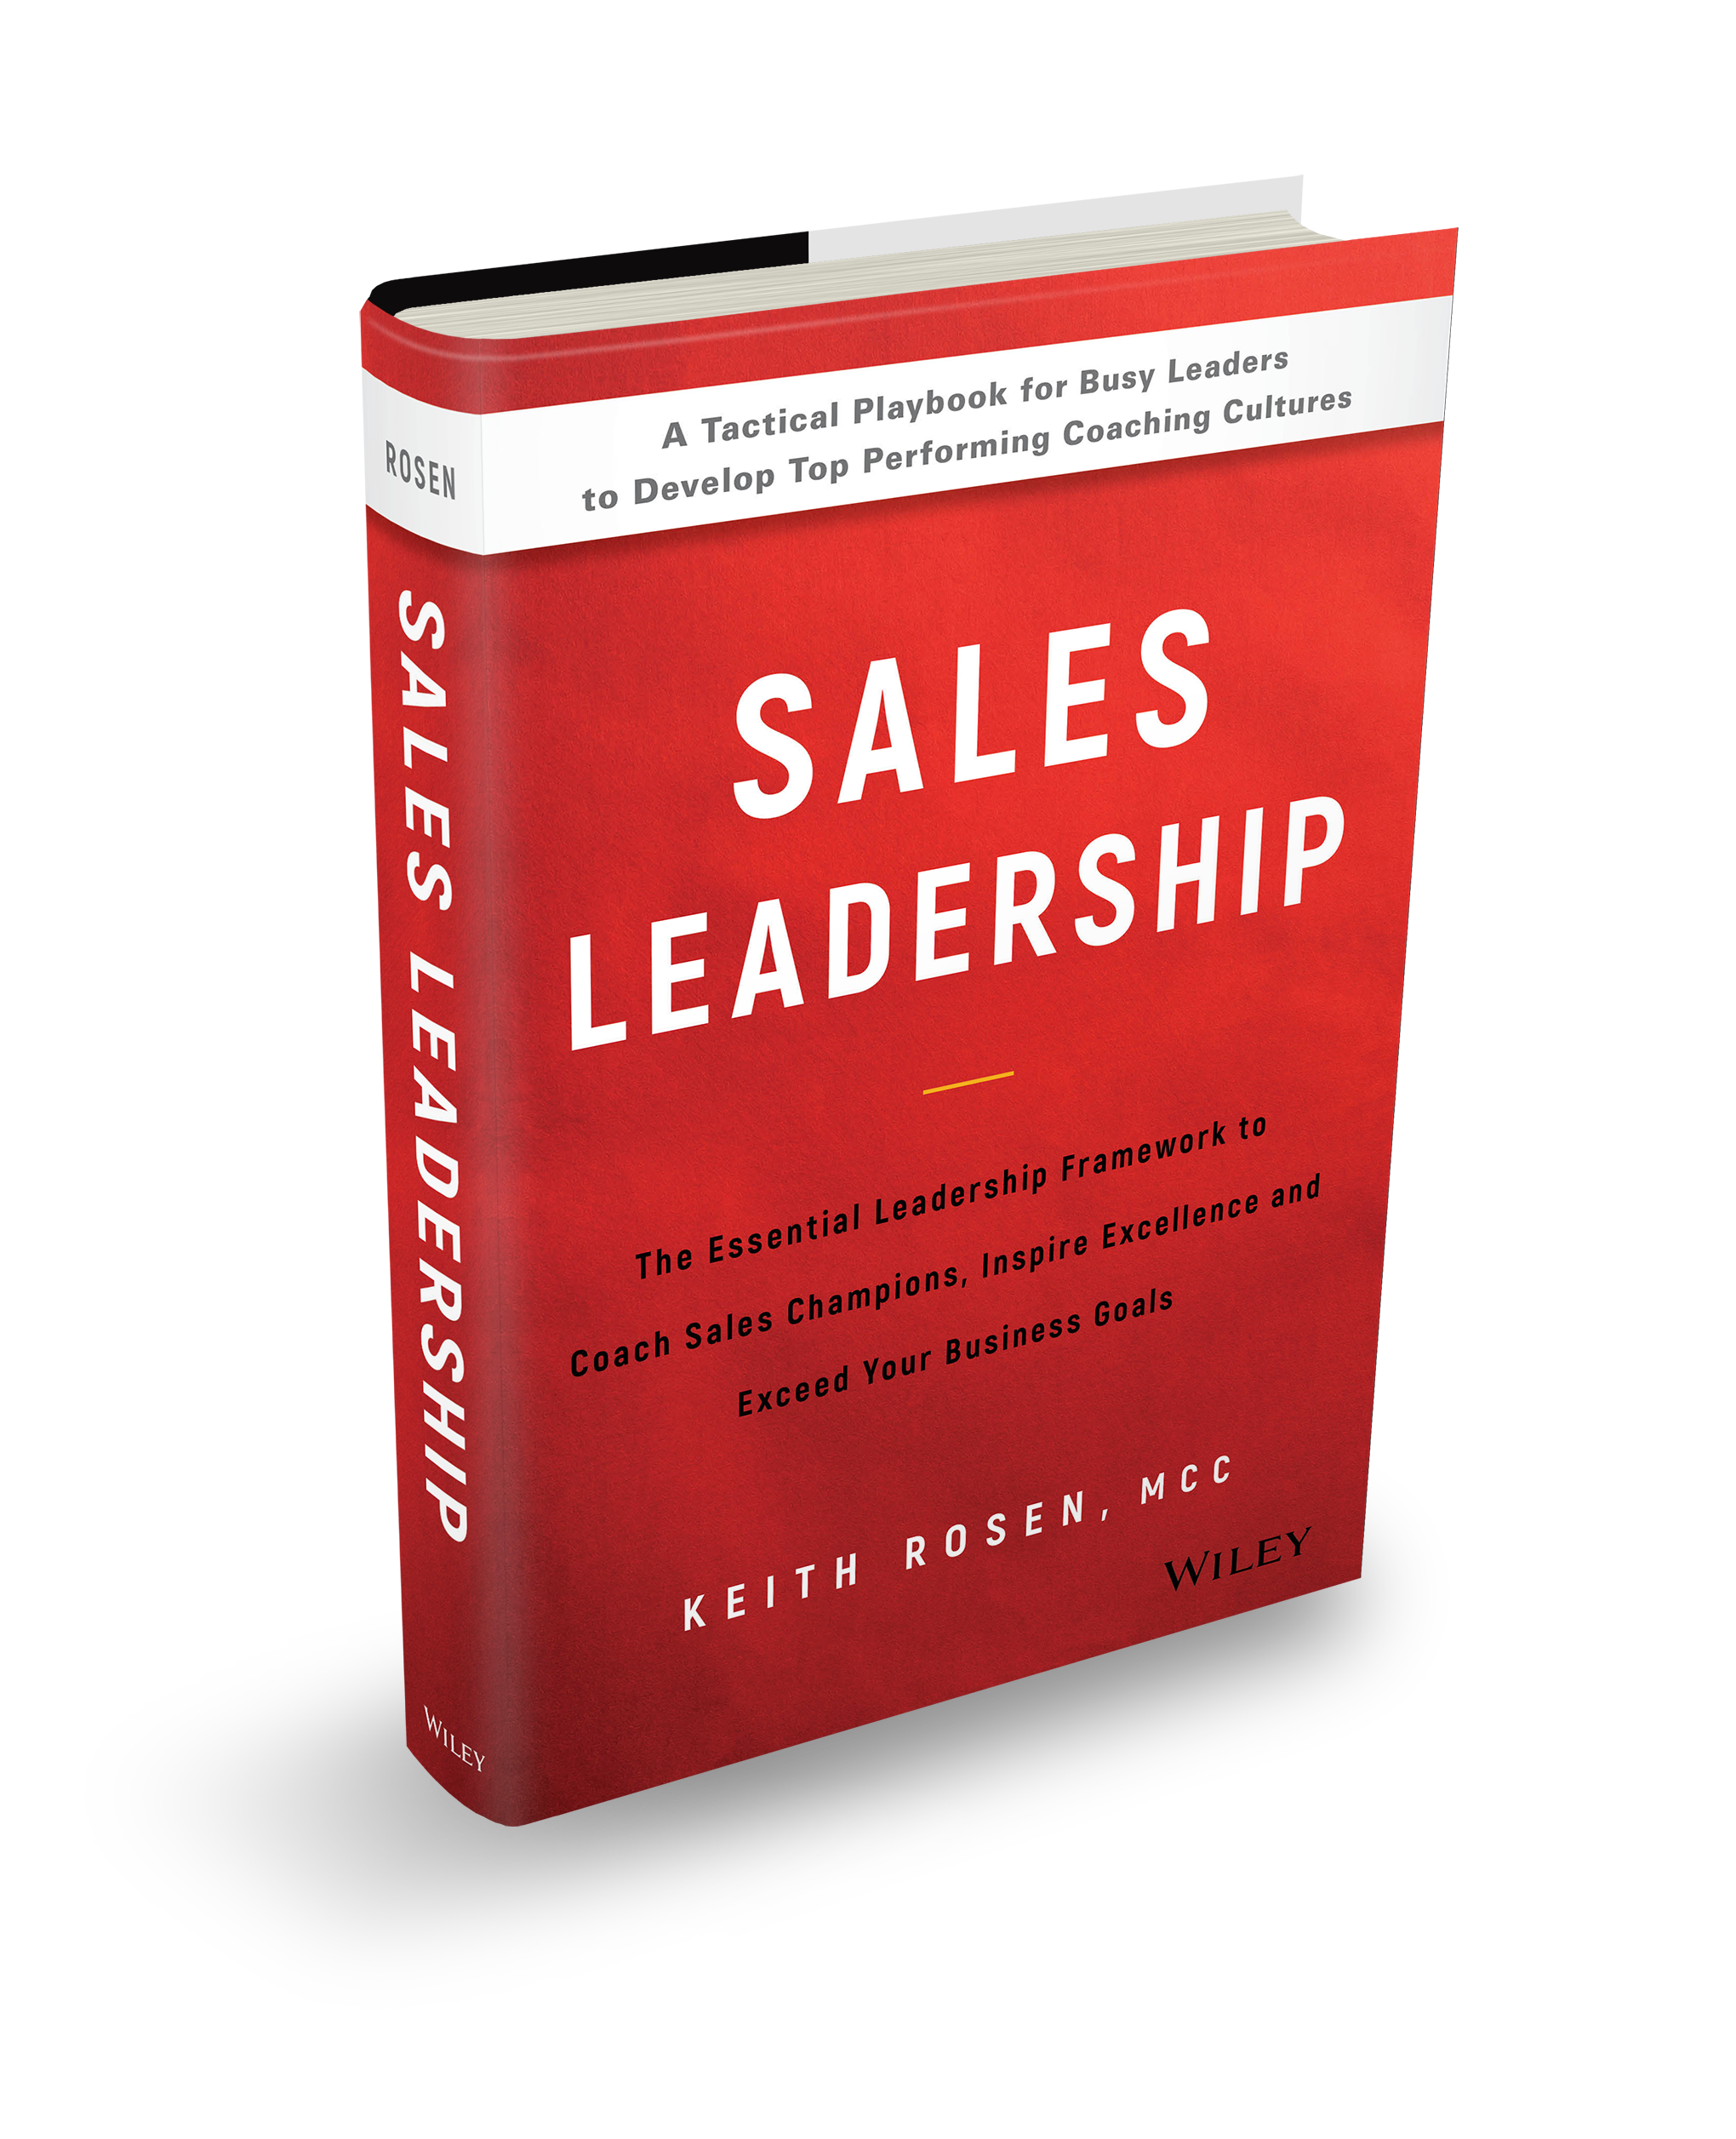 SALES LEADERSHIP Podcast – Book Club Chapter Discussions Episodes 1-5